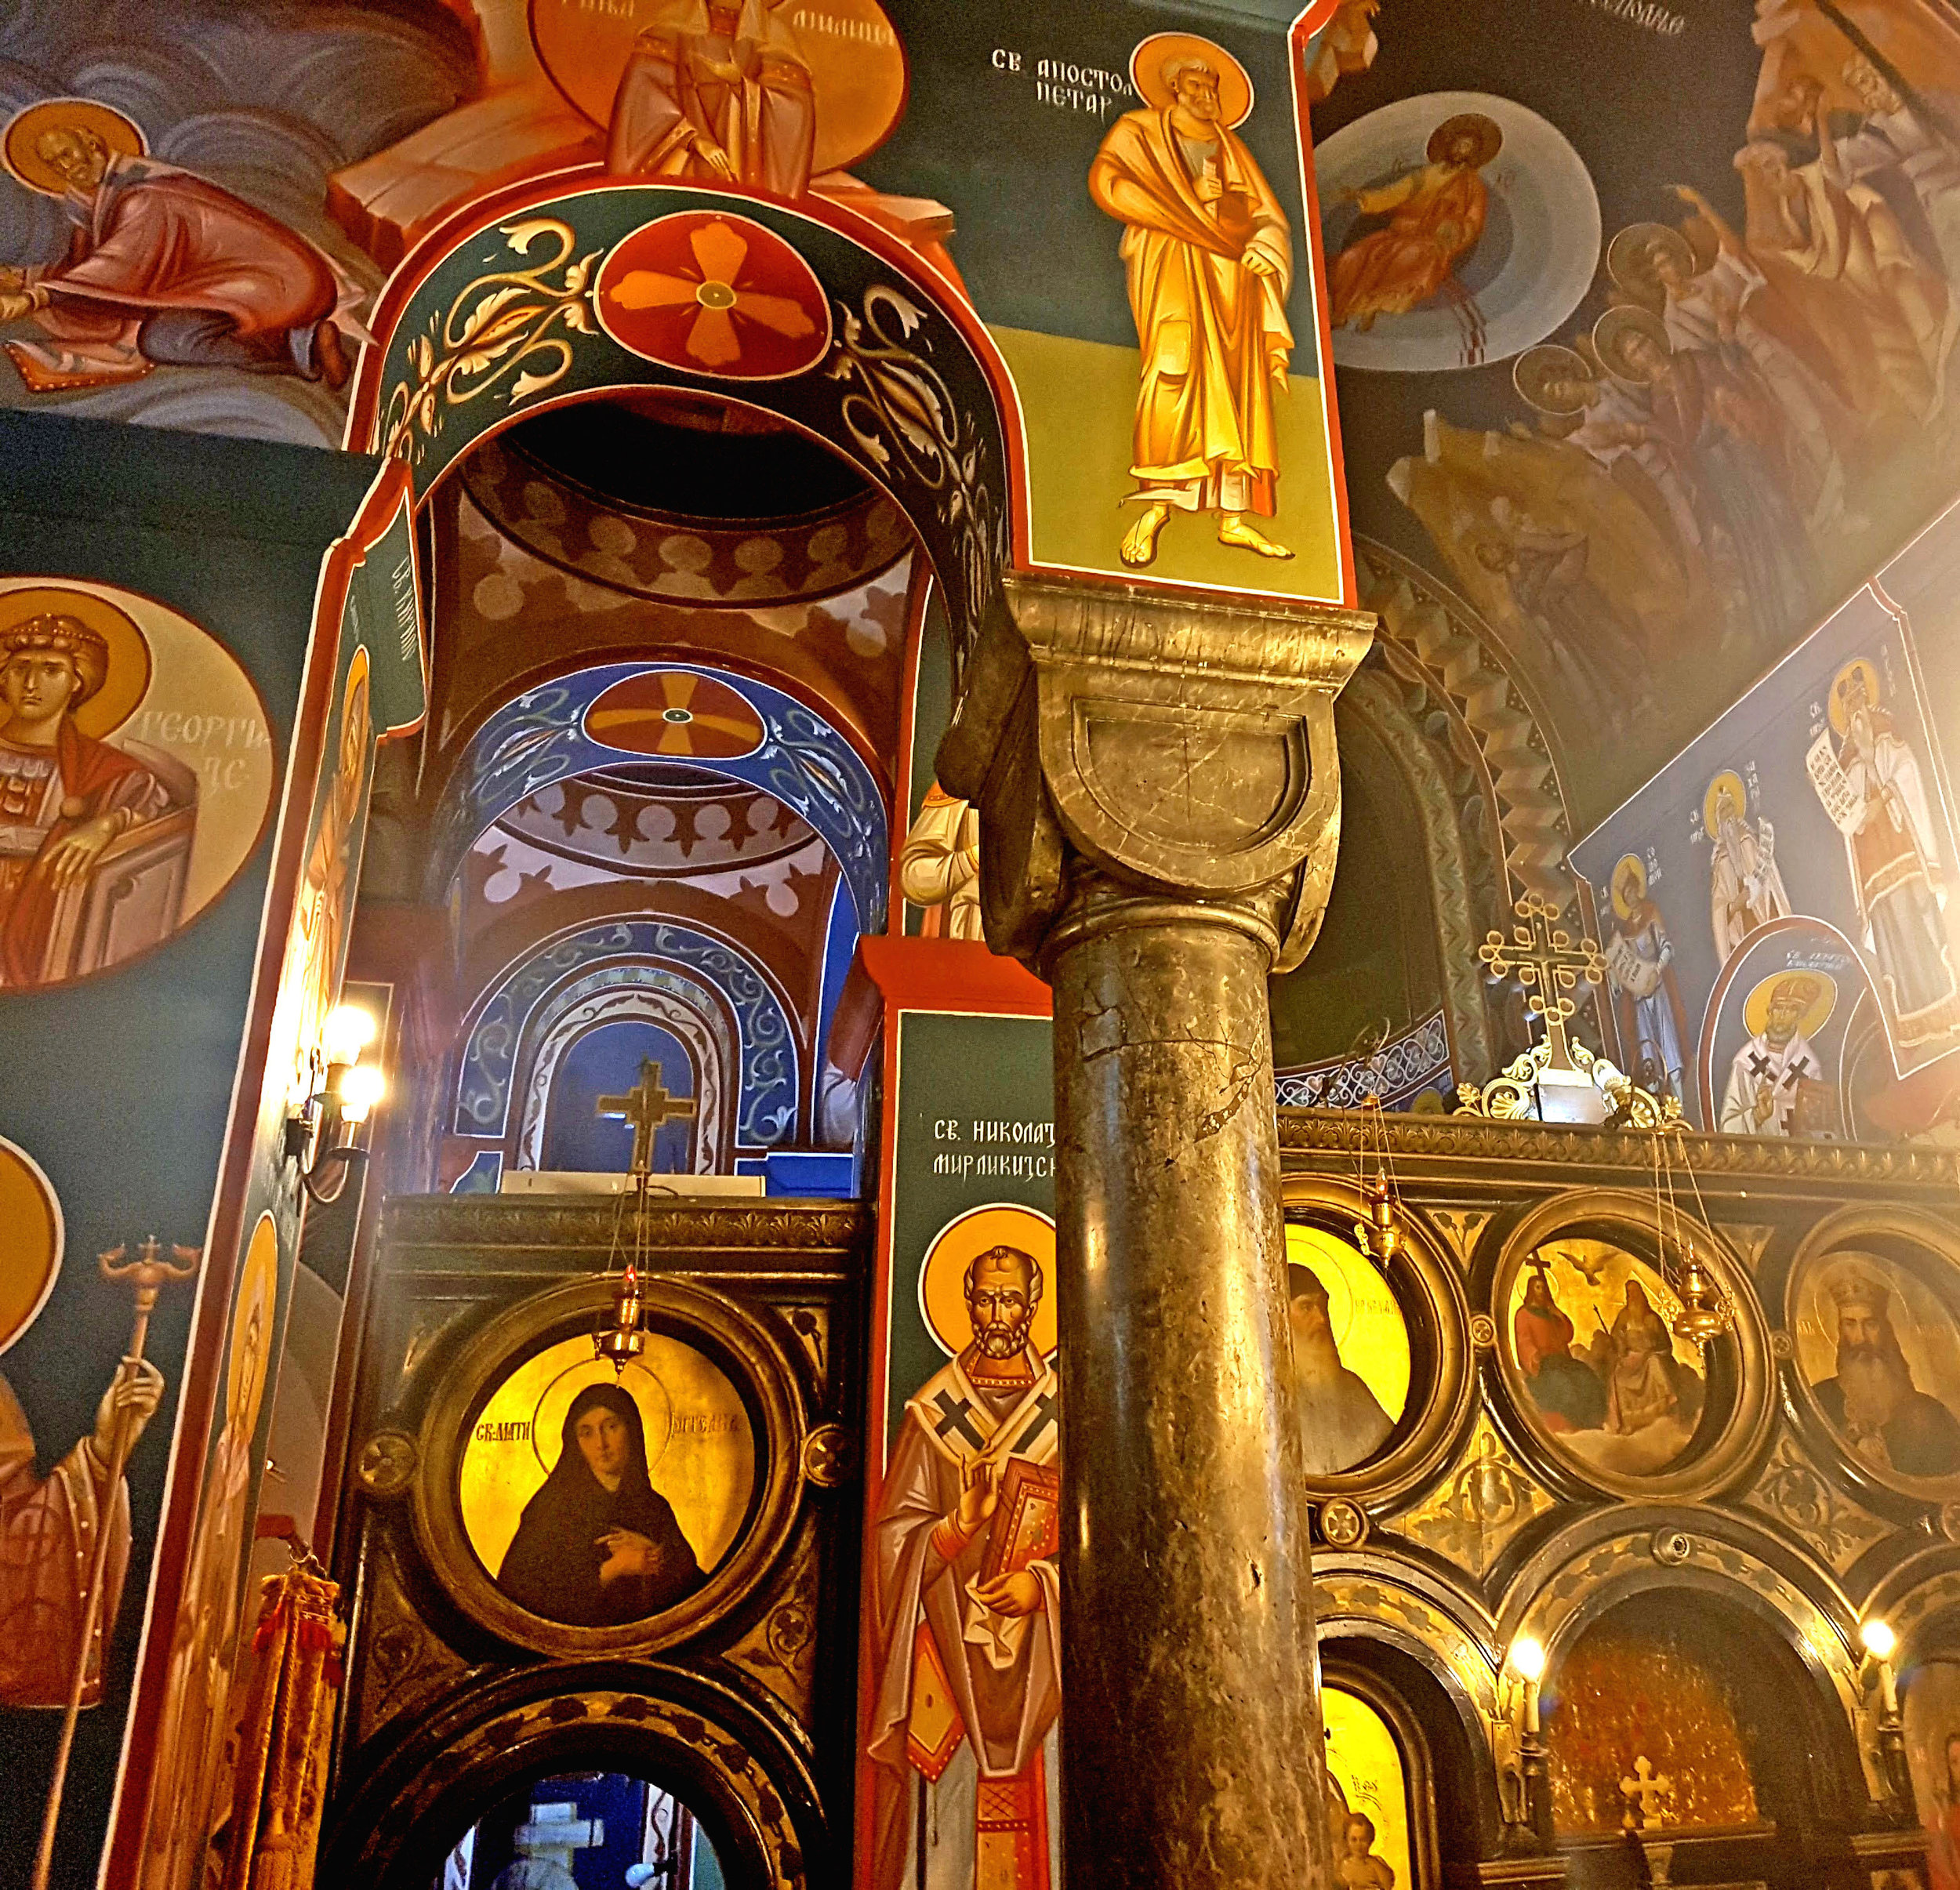 Beautiful interior of 'Crvka Svetog Nikole' (St Nicholas' Church)